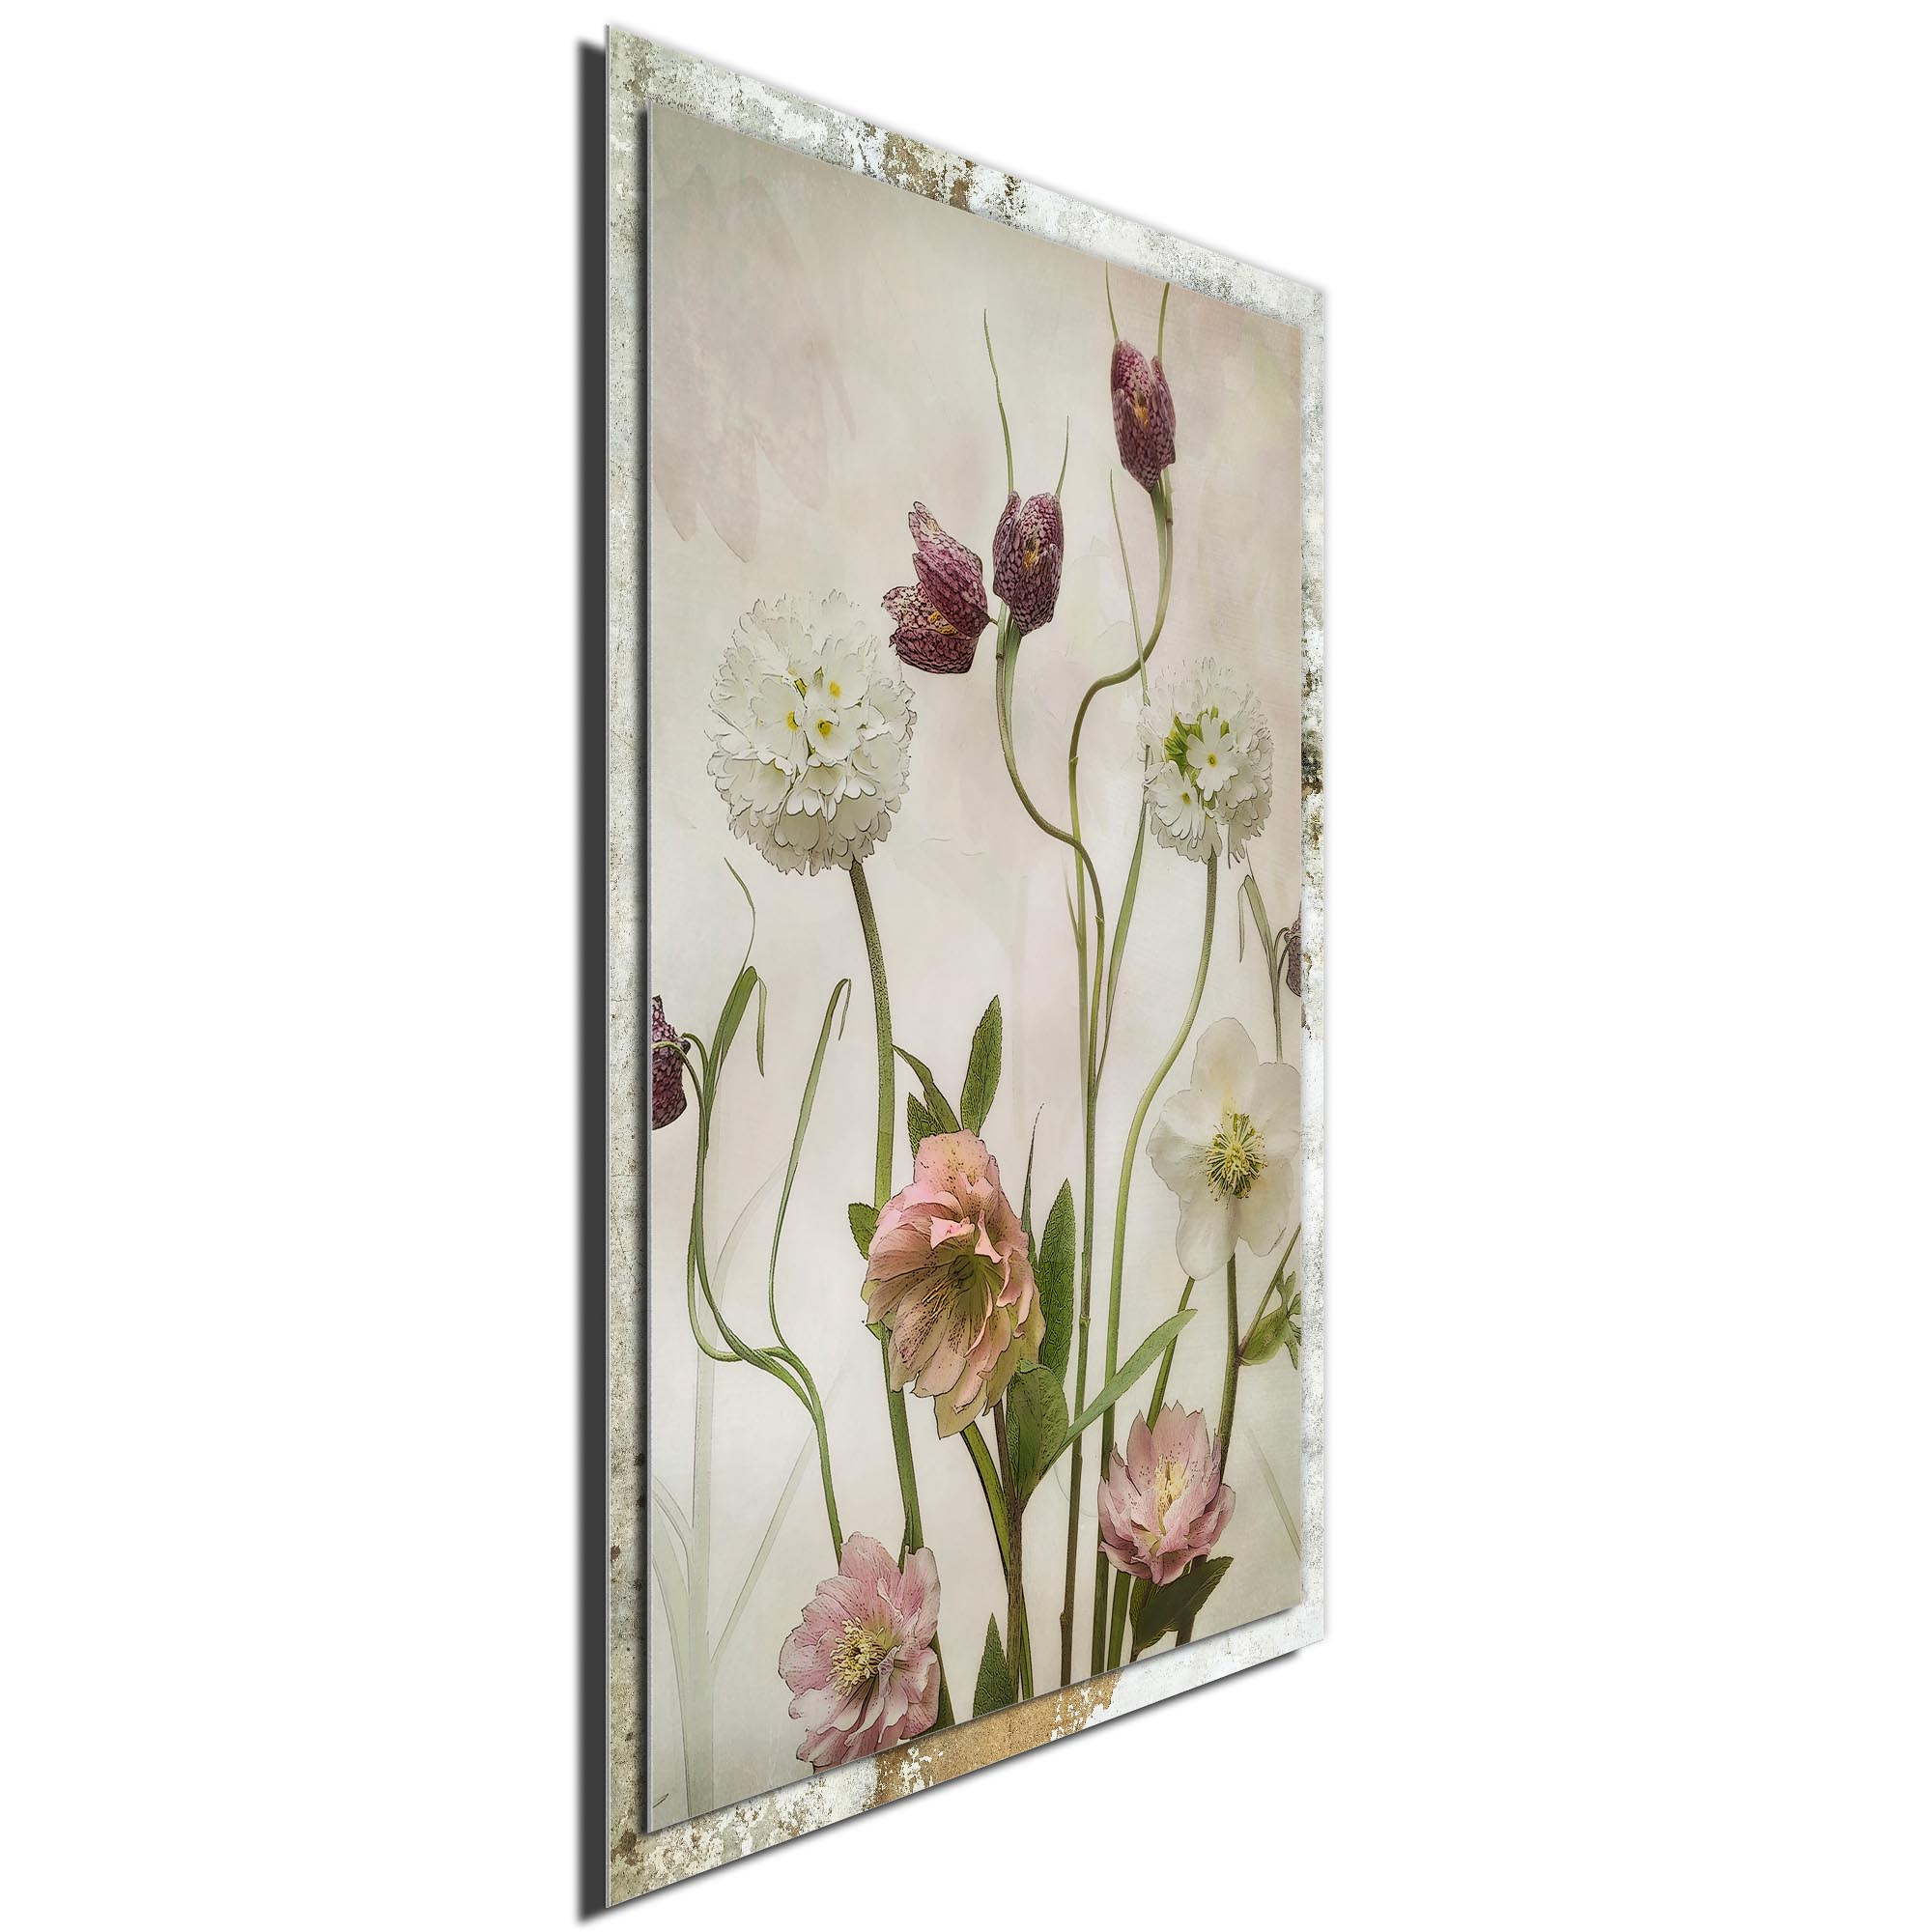 Spring Garden by Sharon Williams - Modern Farmhouse Floral on Metal - Image 2